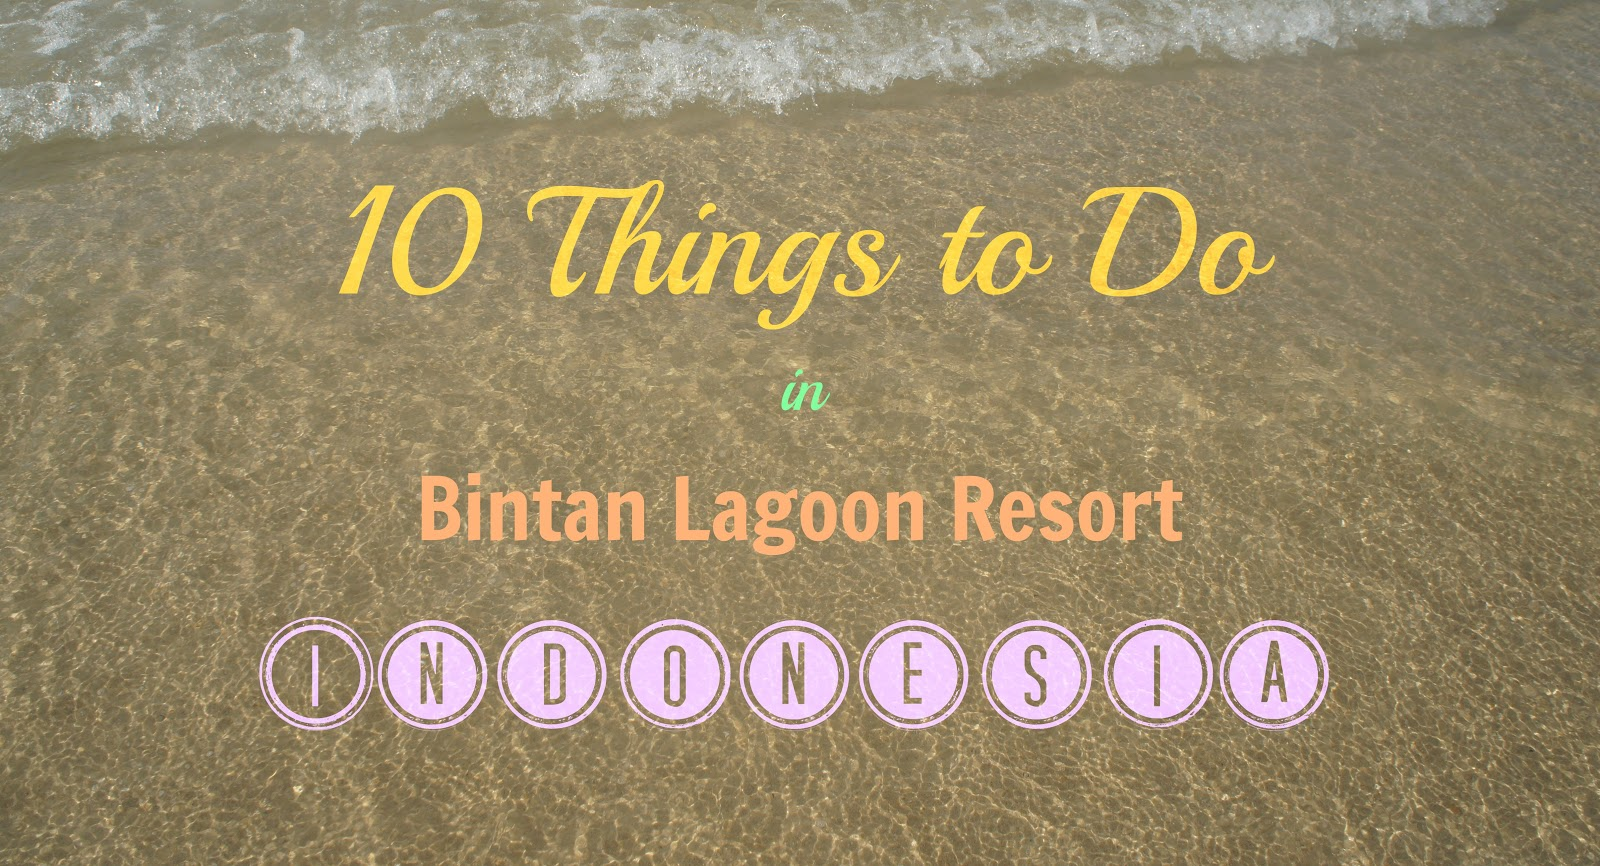 10 Things to Do in Bintan Lagoon Resort: Where to Stay in Bintan, Indonesia